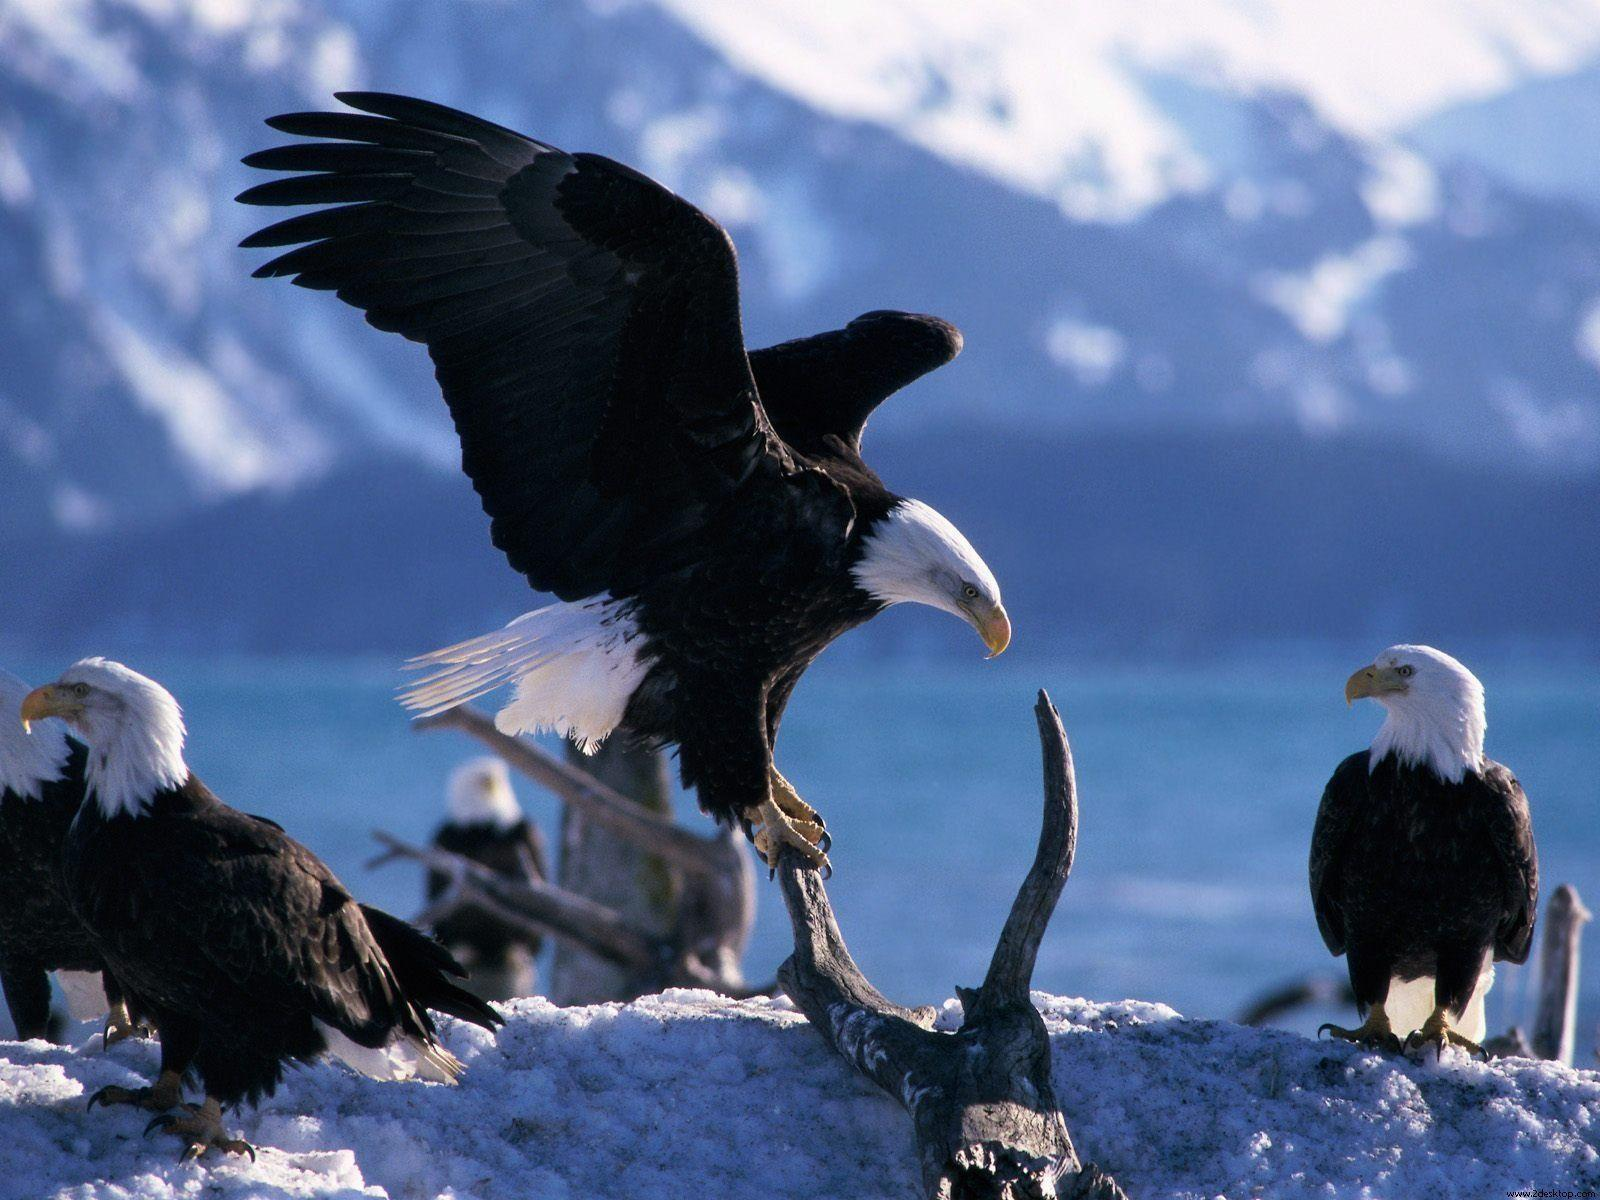 Animals : Pretty Animals Wings Extended Bald Eagles Desktop Image ...